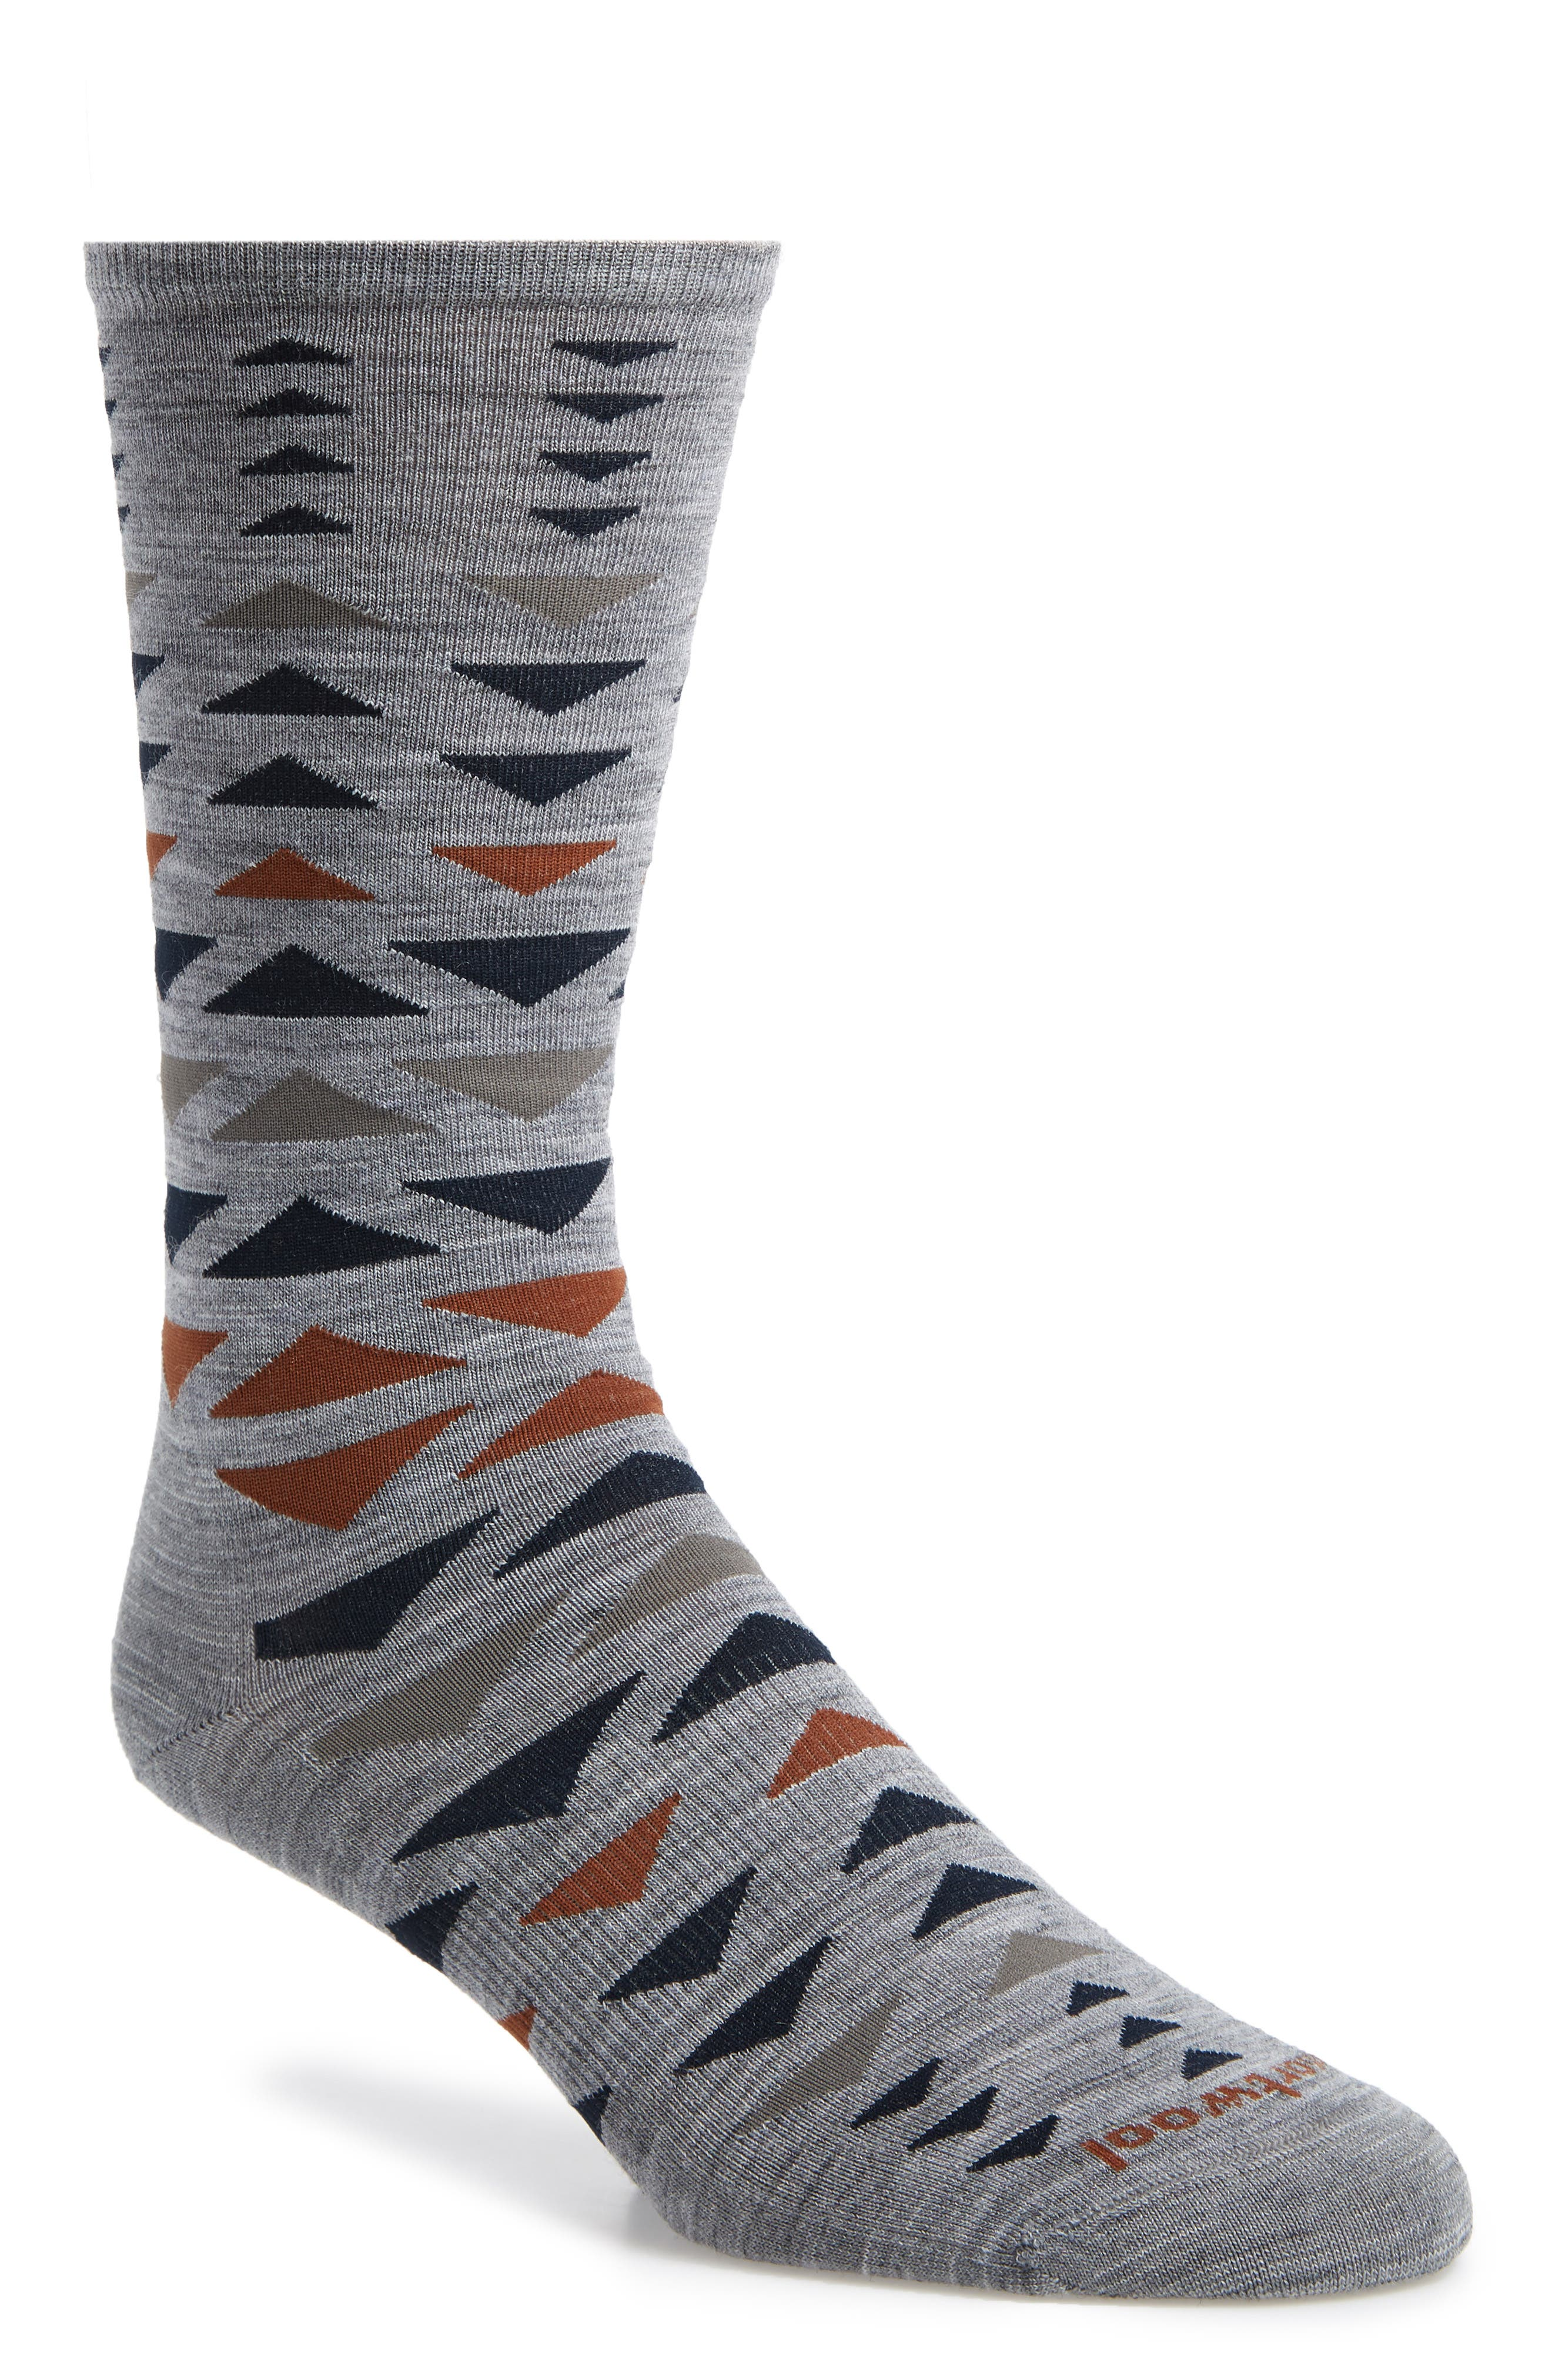 SMARTWOOL, Burgee Geometric Socks, Main thumbnail 1, color, LIGHT GREY